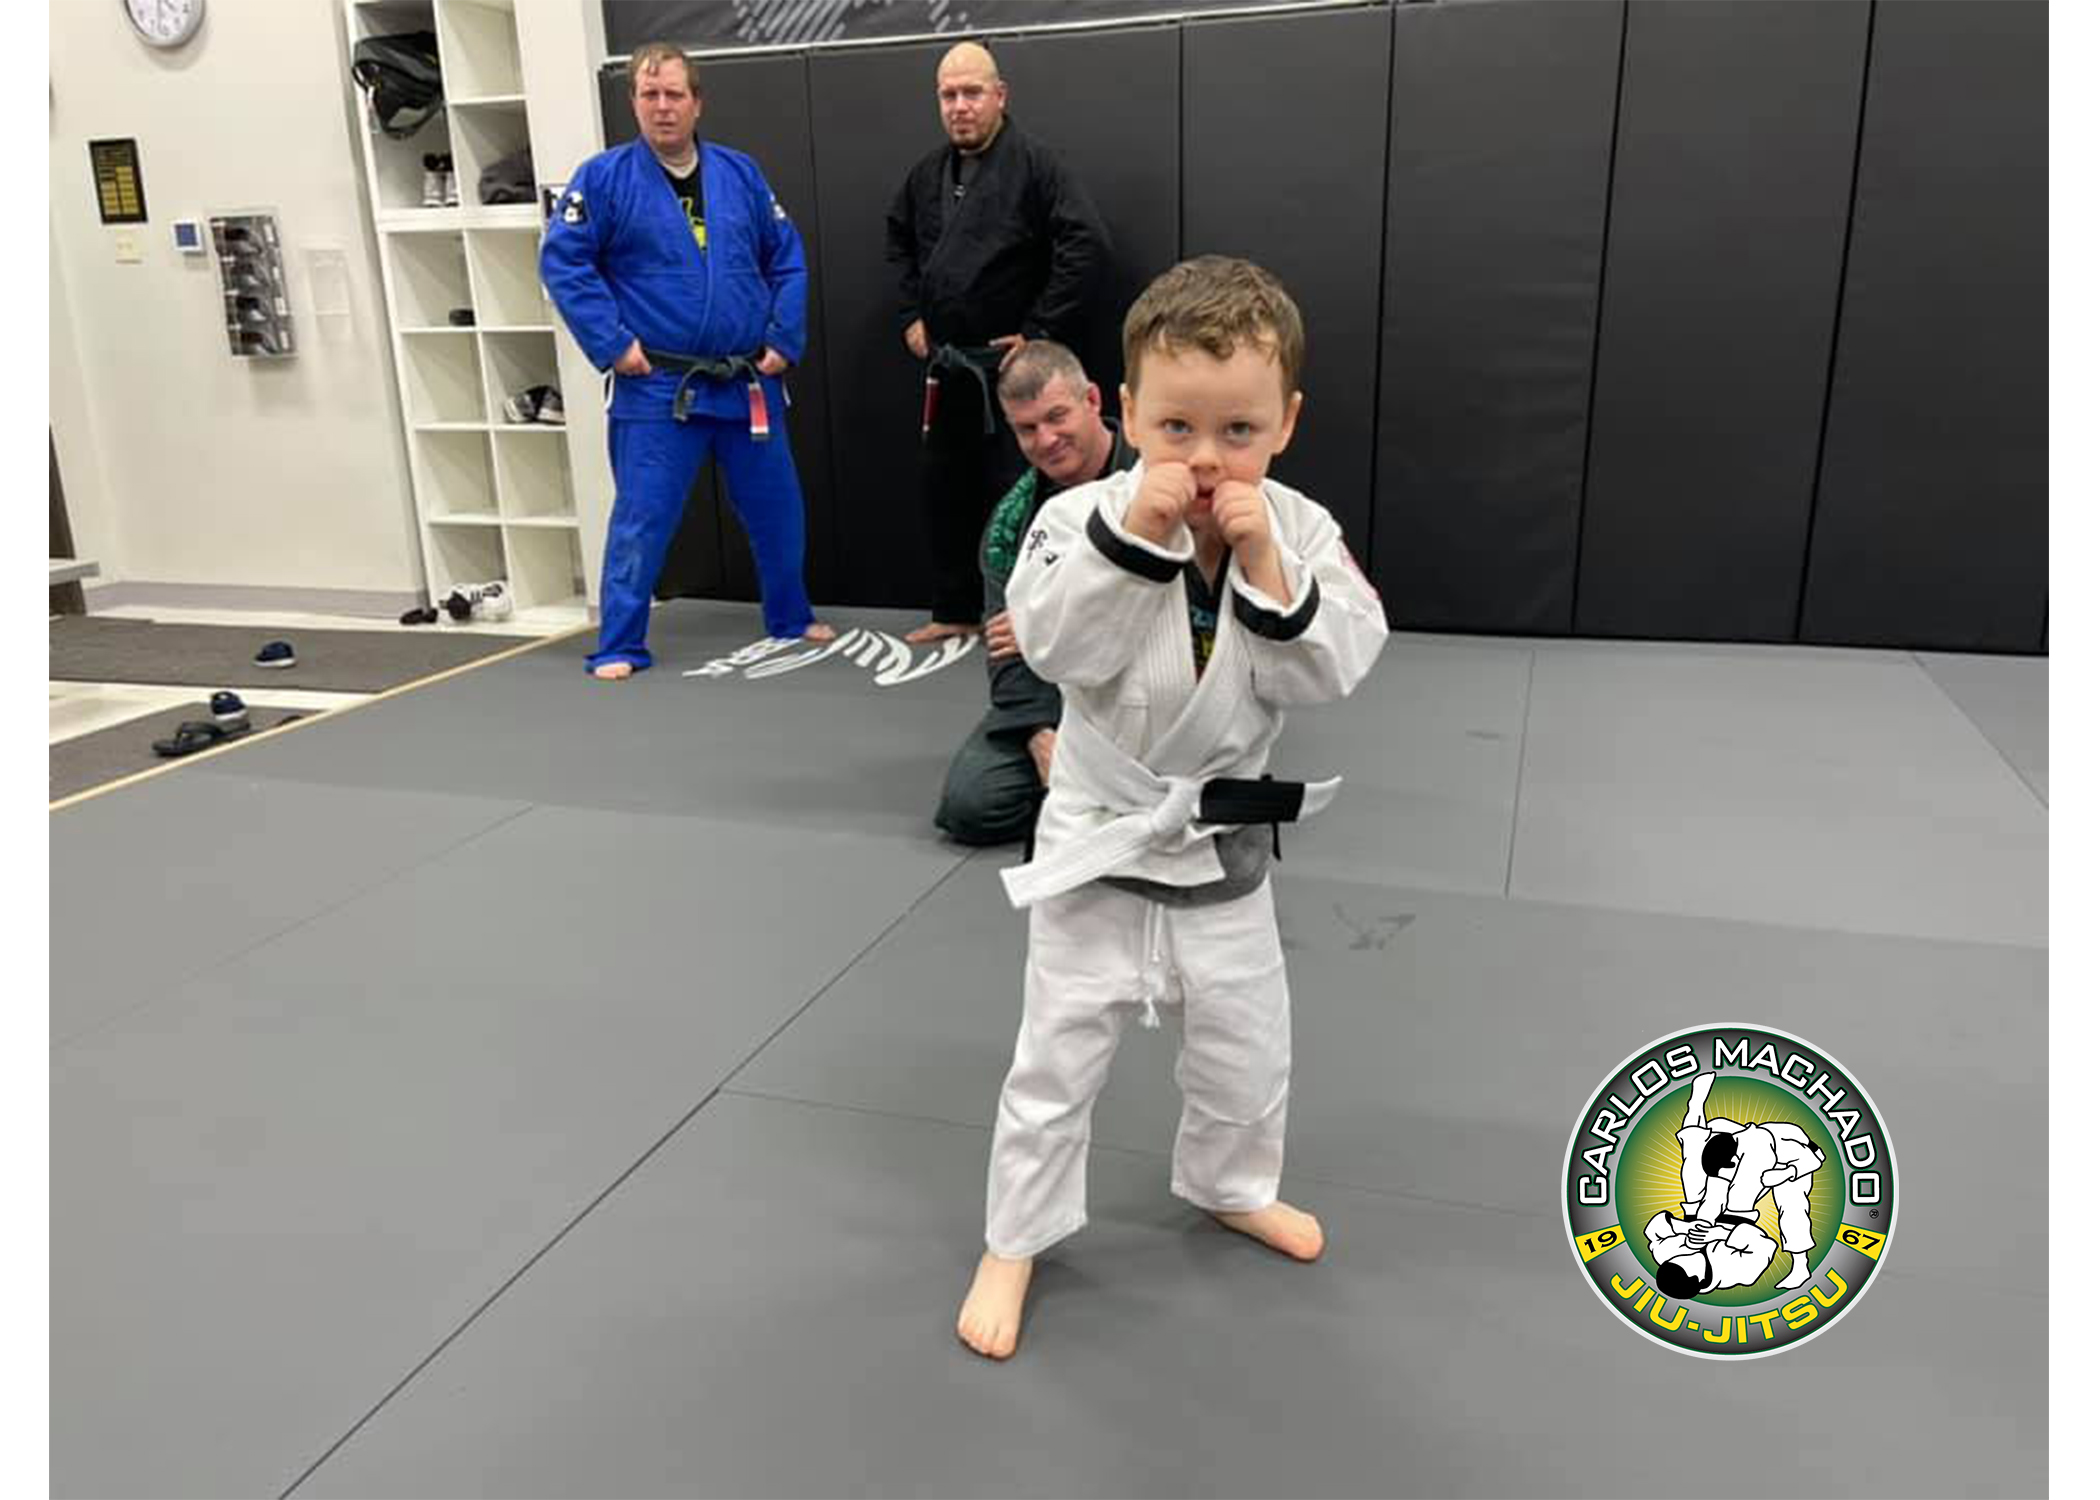 A young jiu jitsu student displaying his confidence